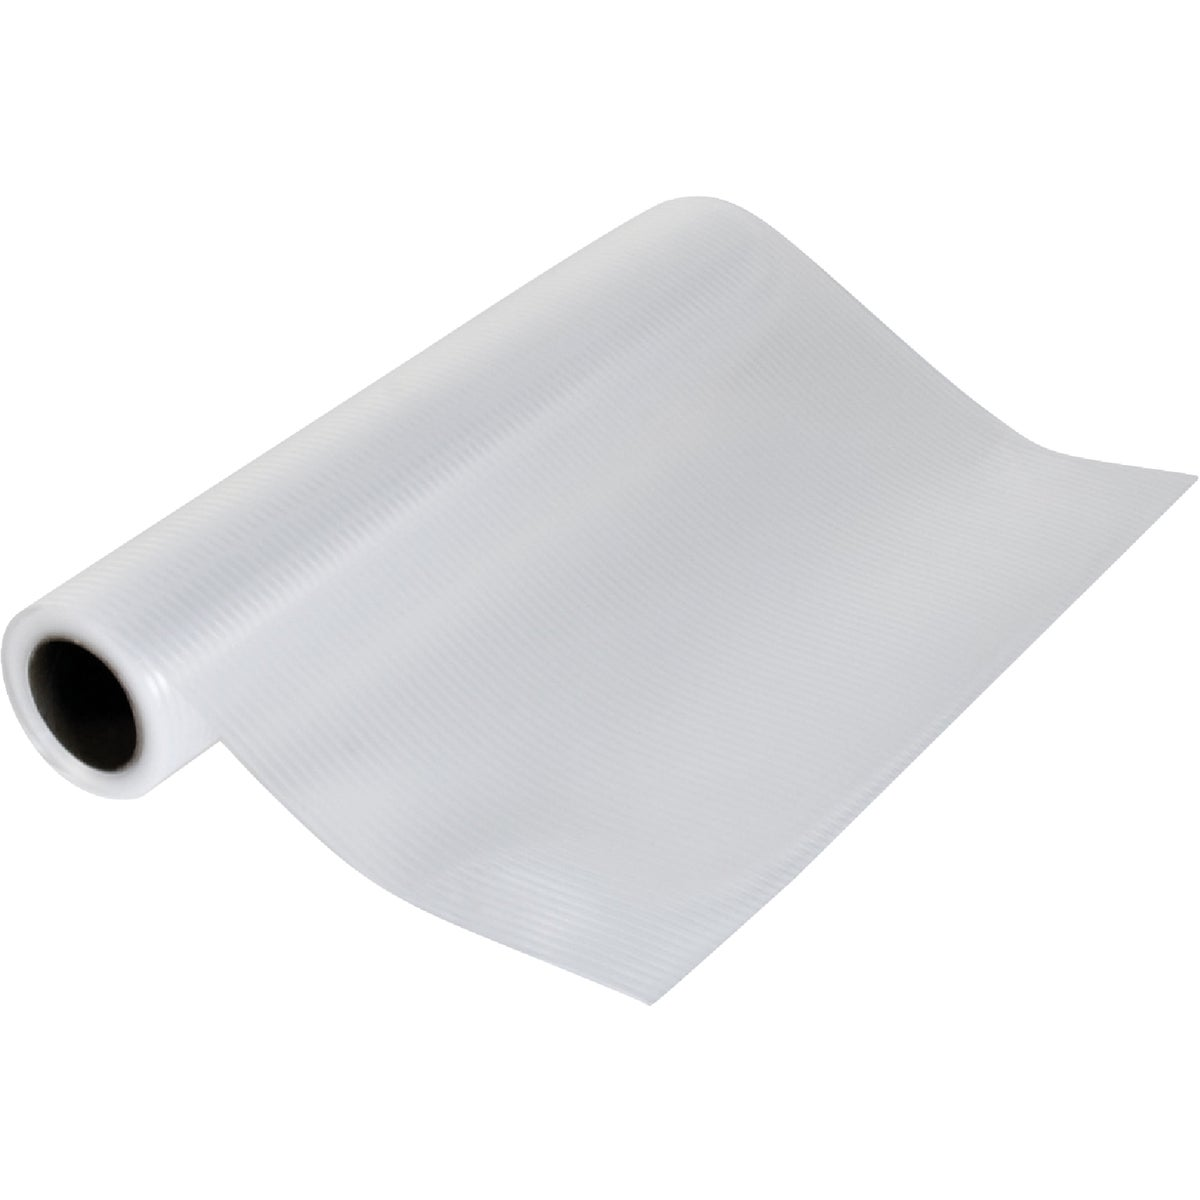 CLEAR RIBBED SHELF LINER - 06F-C8Q01-01 by Kittrich Corp